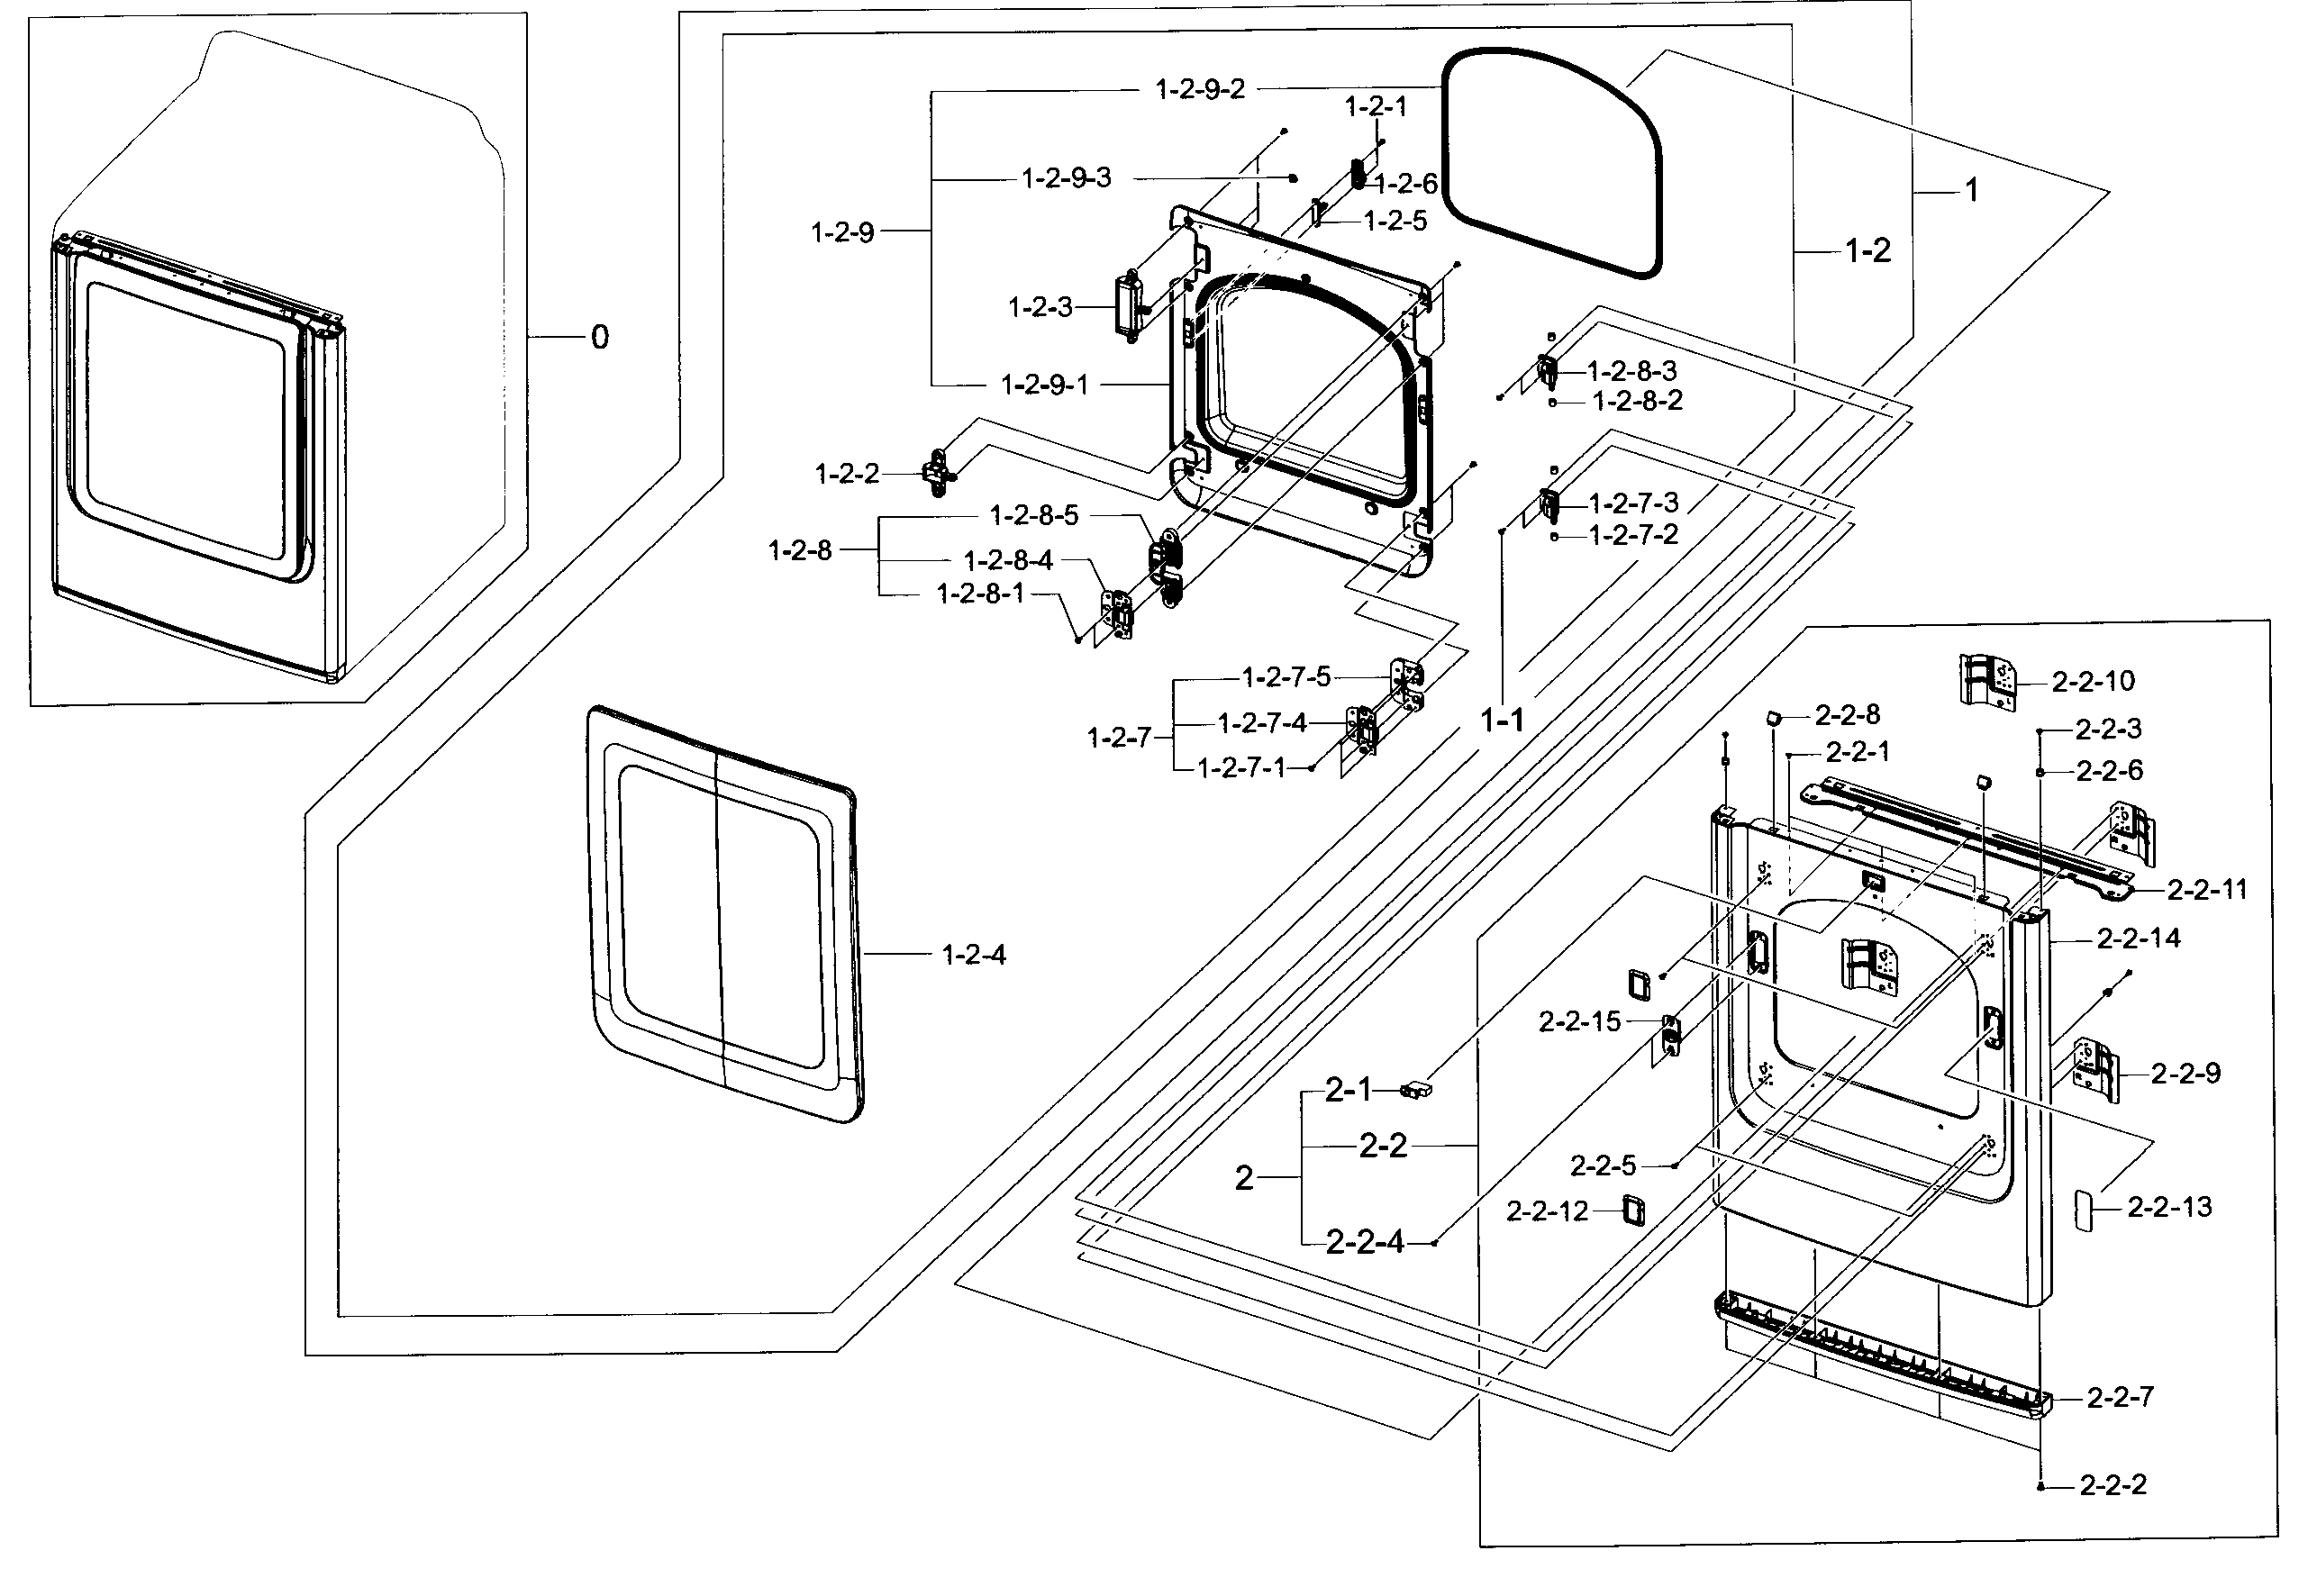 Find Out Here Wiring Diagram For Samsung Dryer Heating Element Sample - Samsung Dryer Wiring Diagram